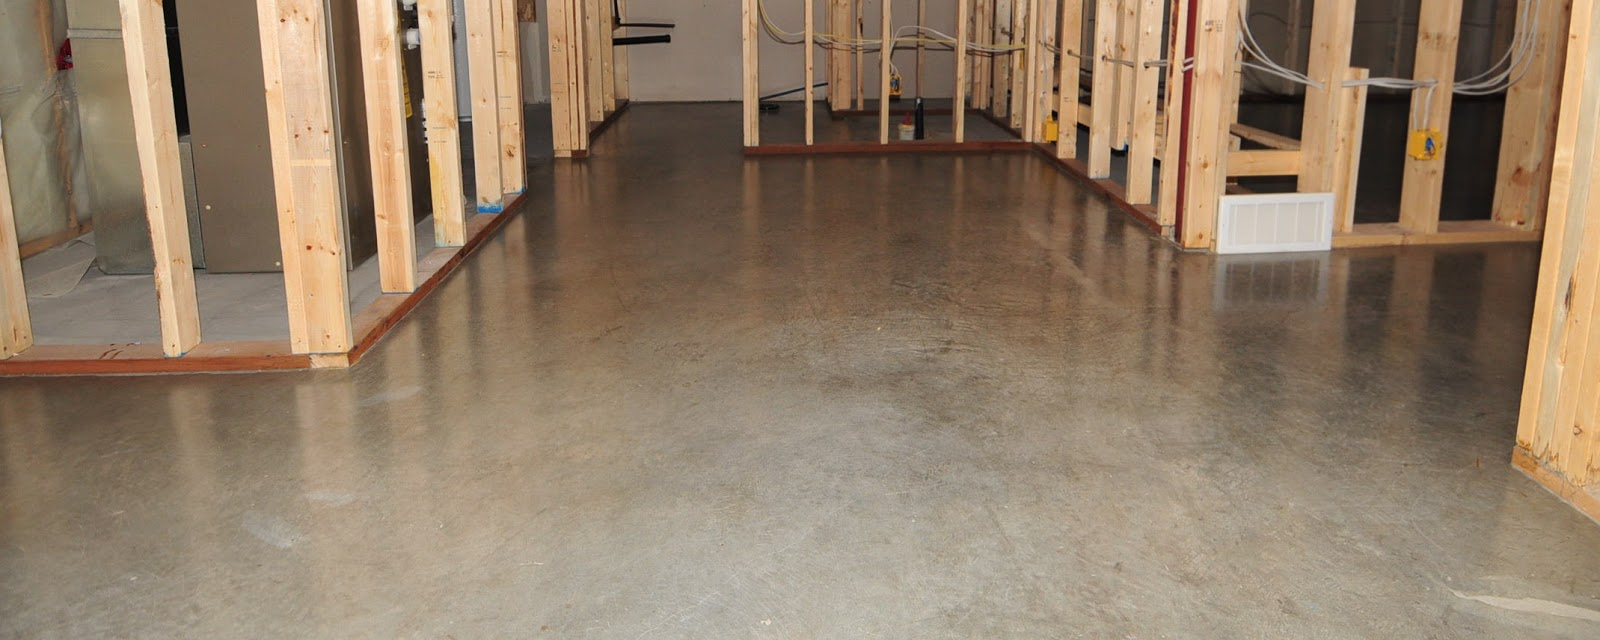 MODE CONCRETE: Hip And Modern Basement Concrete Floors